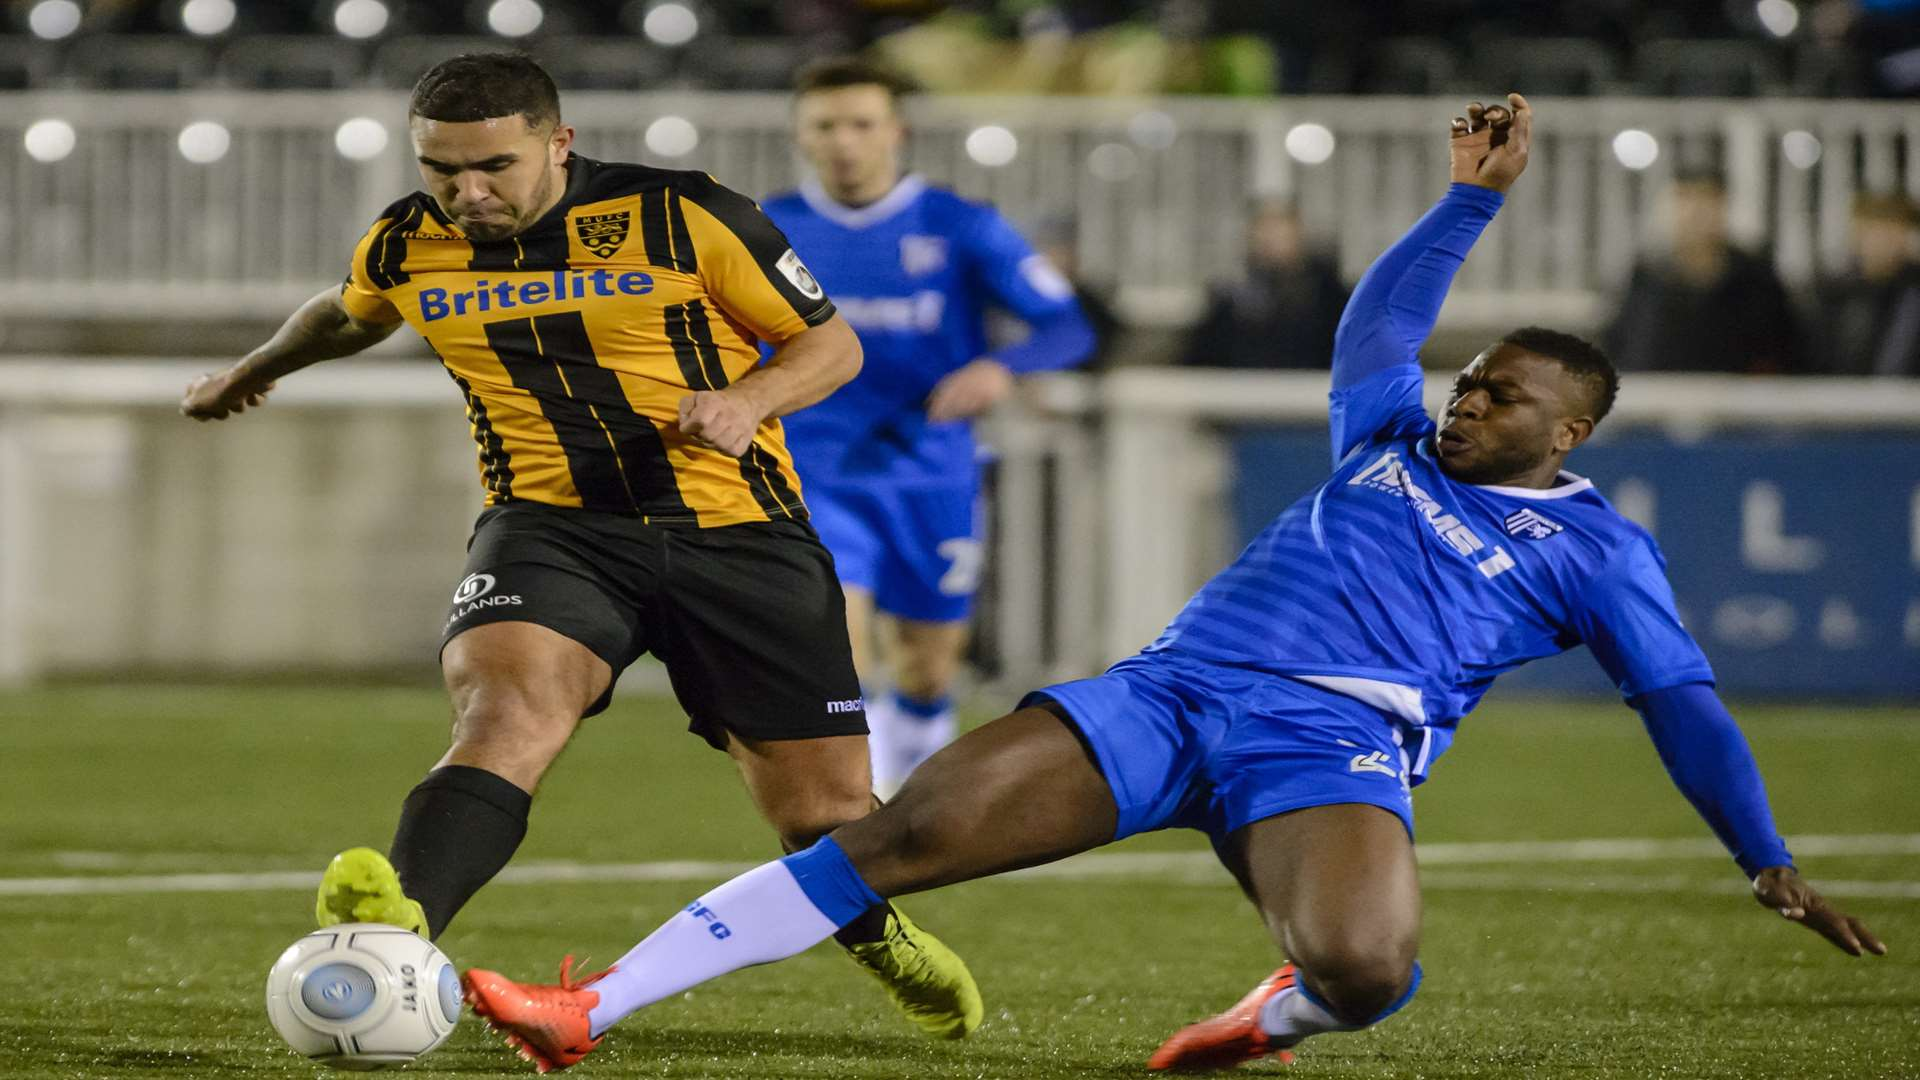 Gillingham's Frank Moussa in action against Maidstone United Picture: Andy Payton